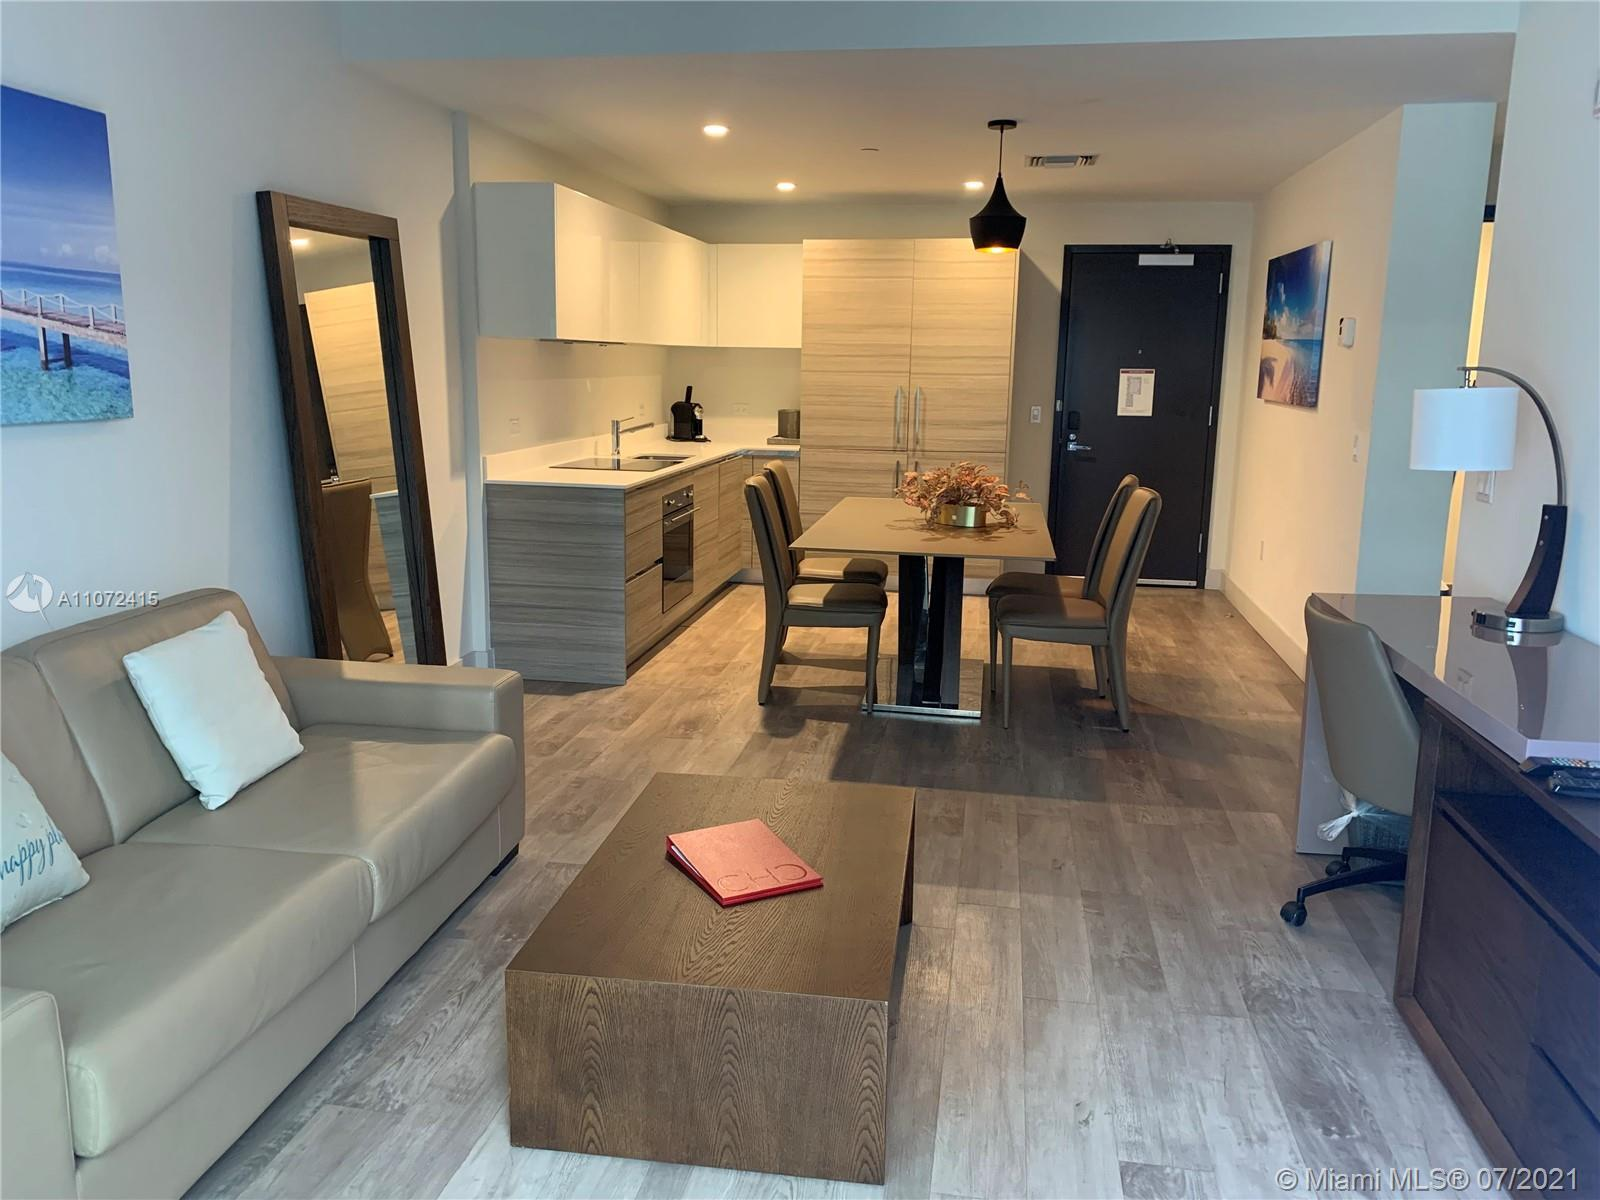 Best price in the building! Modern furnished unit steps to Hollywood Beach Boardwalk. Unit had a 95%